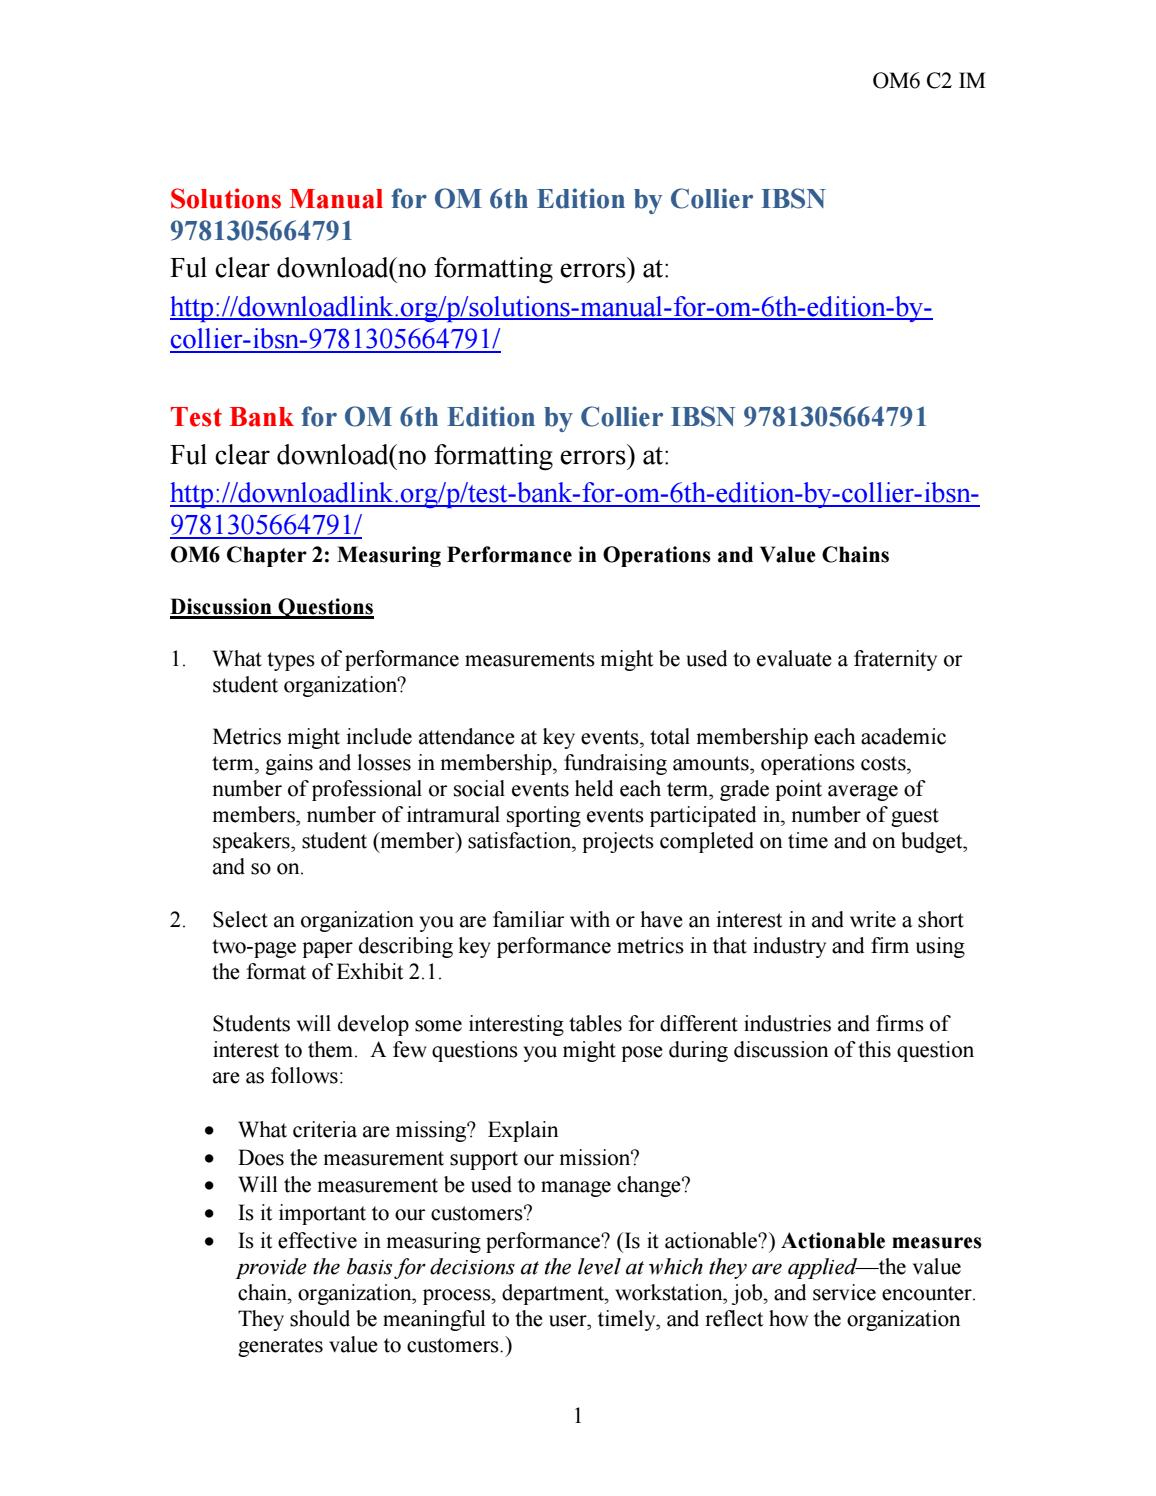 Solutions manual for om 6th edition by collier ibsn 9781305664791 by  Beskeen723 - issuu